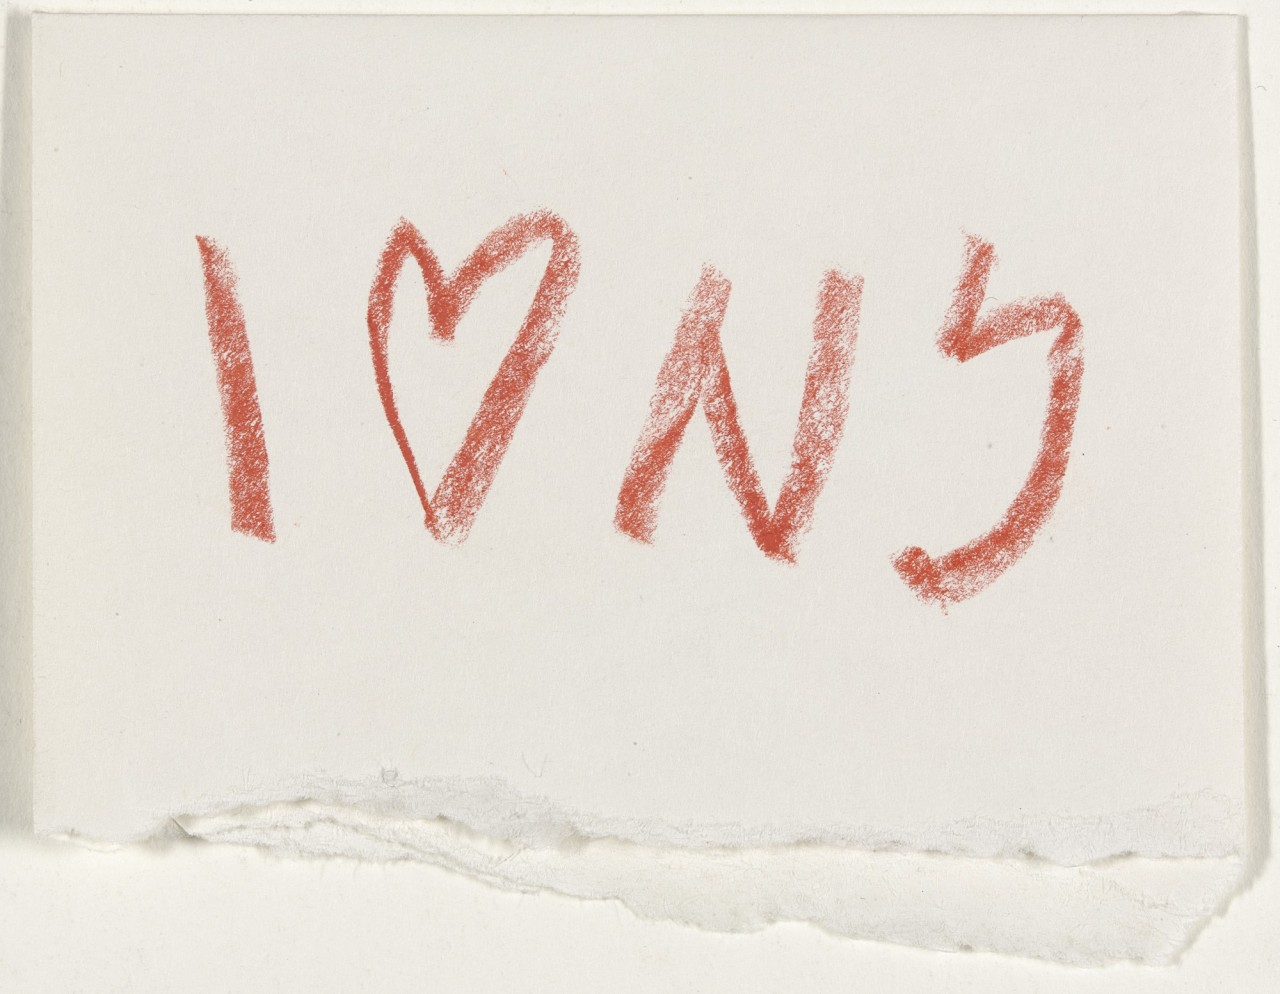 Matters of the heart: the legacy of Milton Glaser's I ♥ NY logo